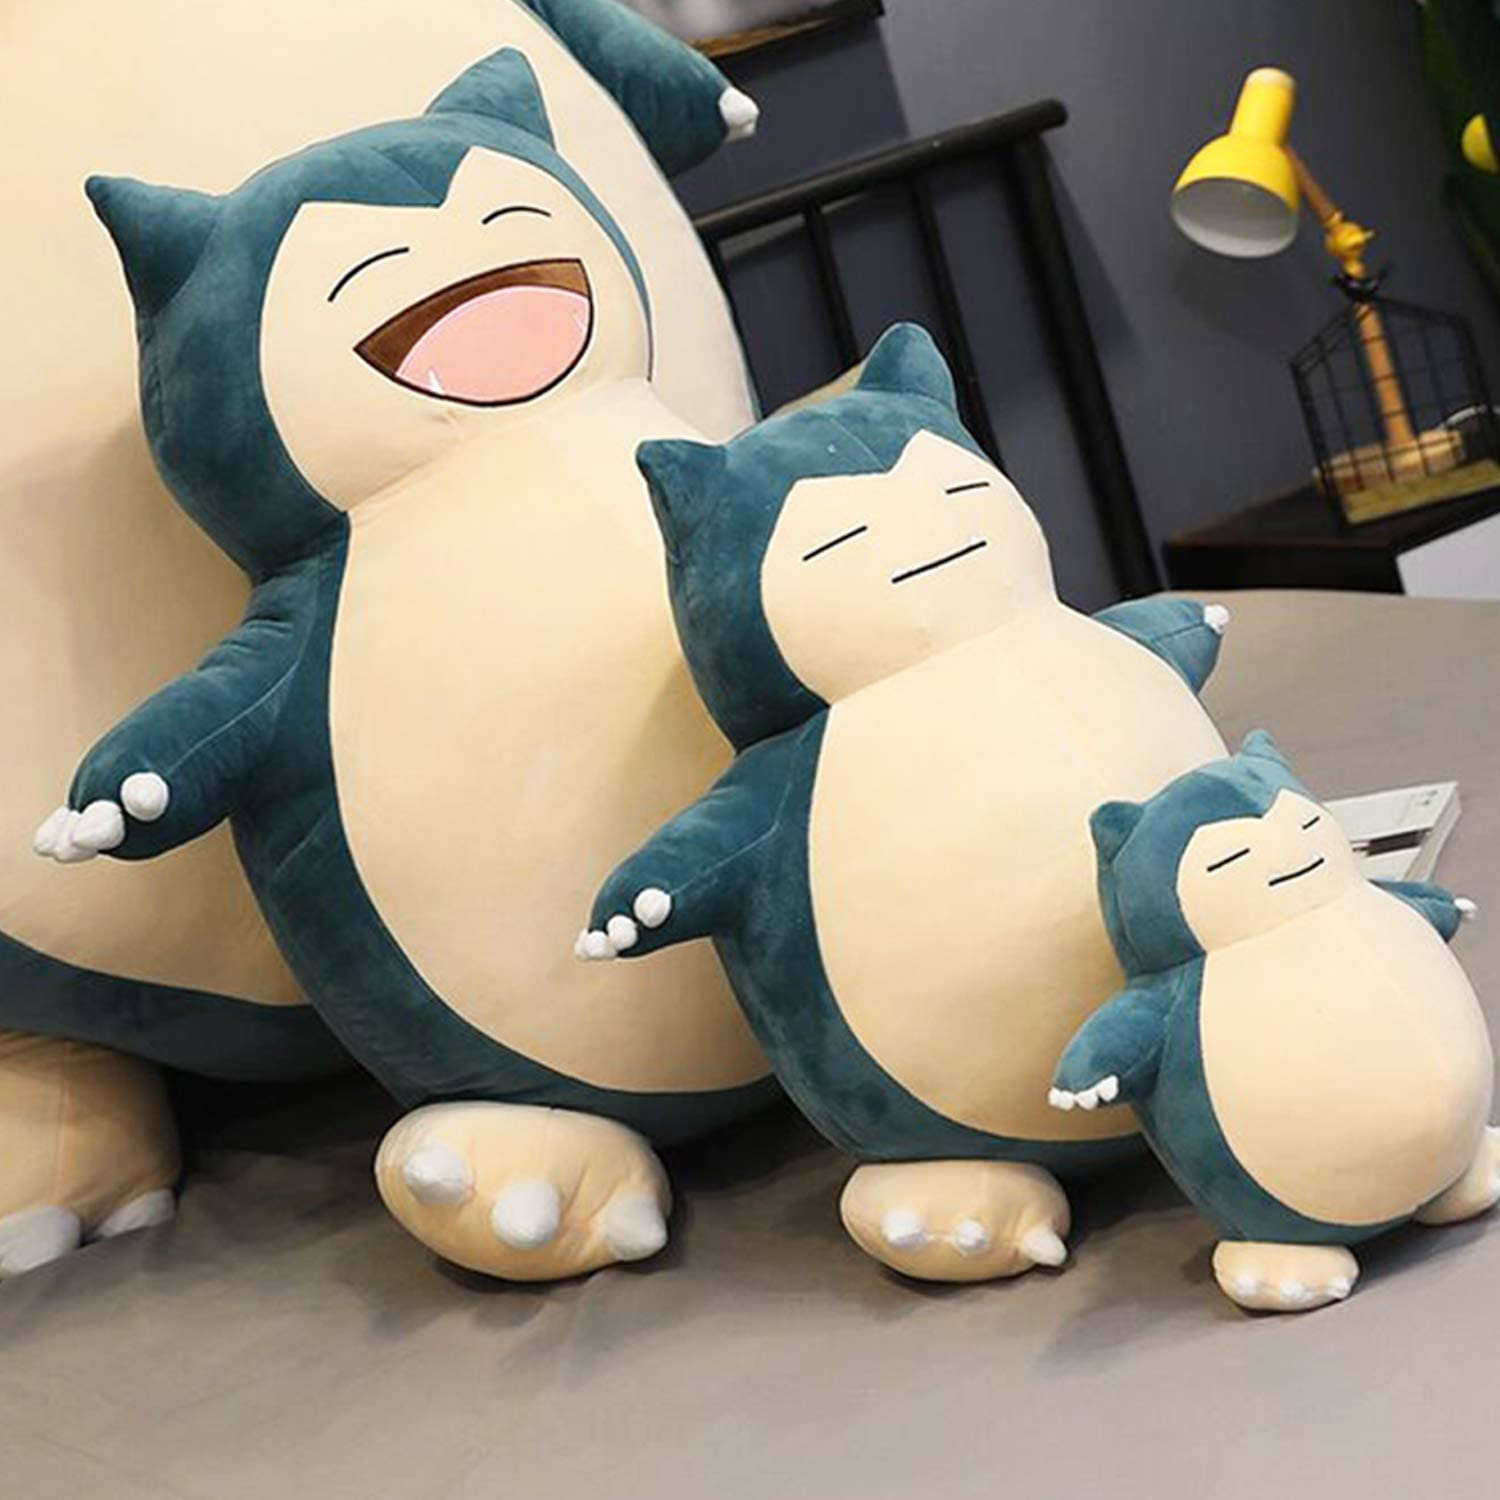 Jumbo Snorlax Plush Toy Soft Doll Animal Pillow 50cm suffered Plush Fluffy Figure Gift for Kids